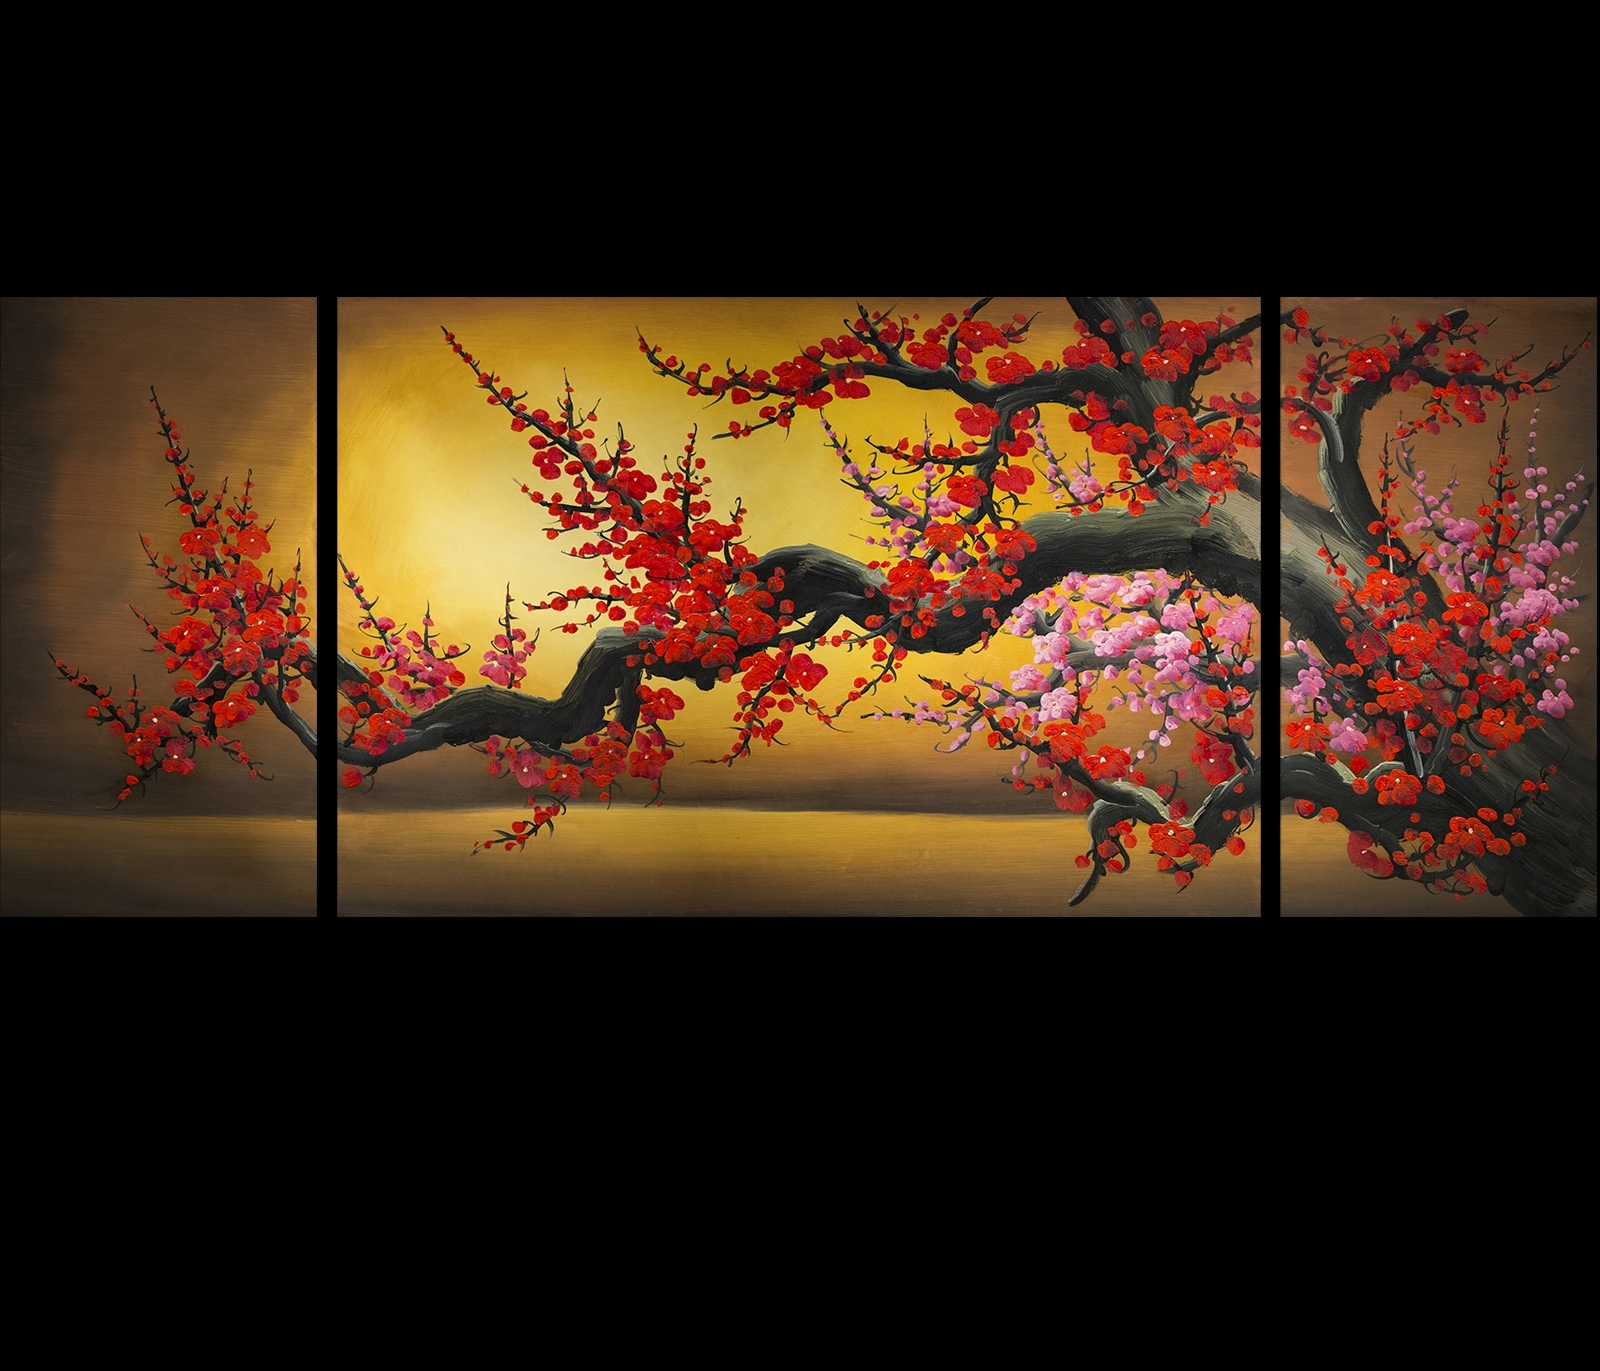 Chinese Cherry Blossom Painting Original Modern Abstract Art With Regard To Most Recently Released Abstract Cherry Blossom Wall Art (View 10 of 20)